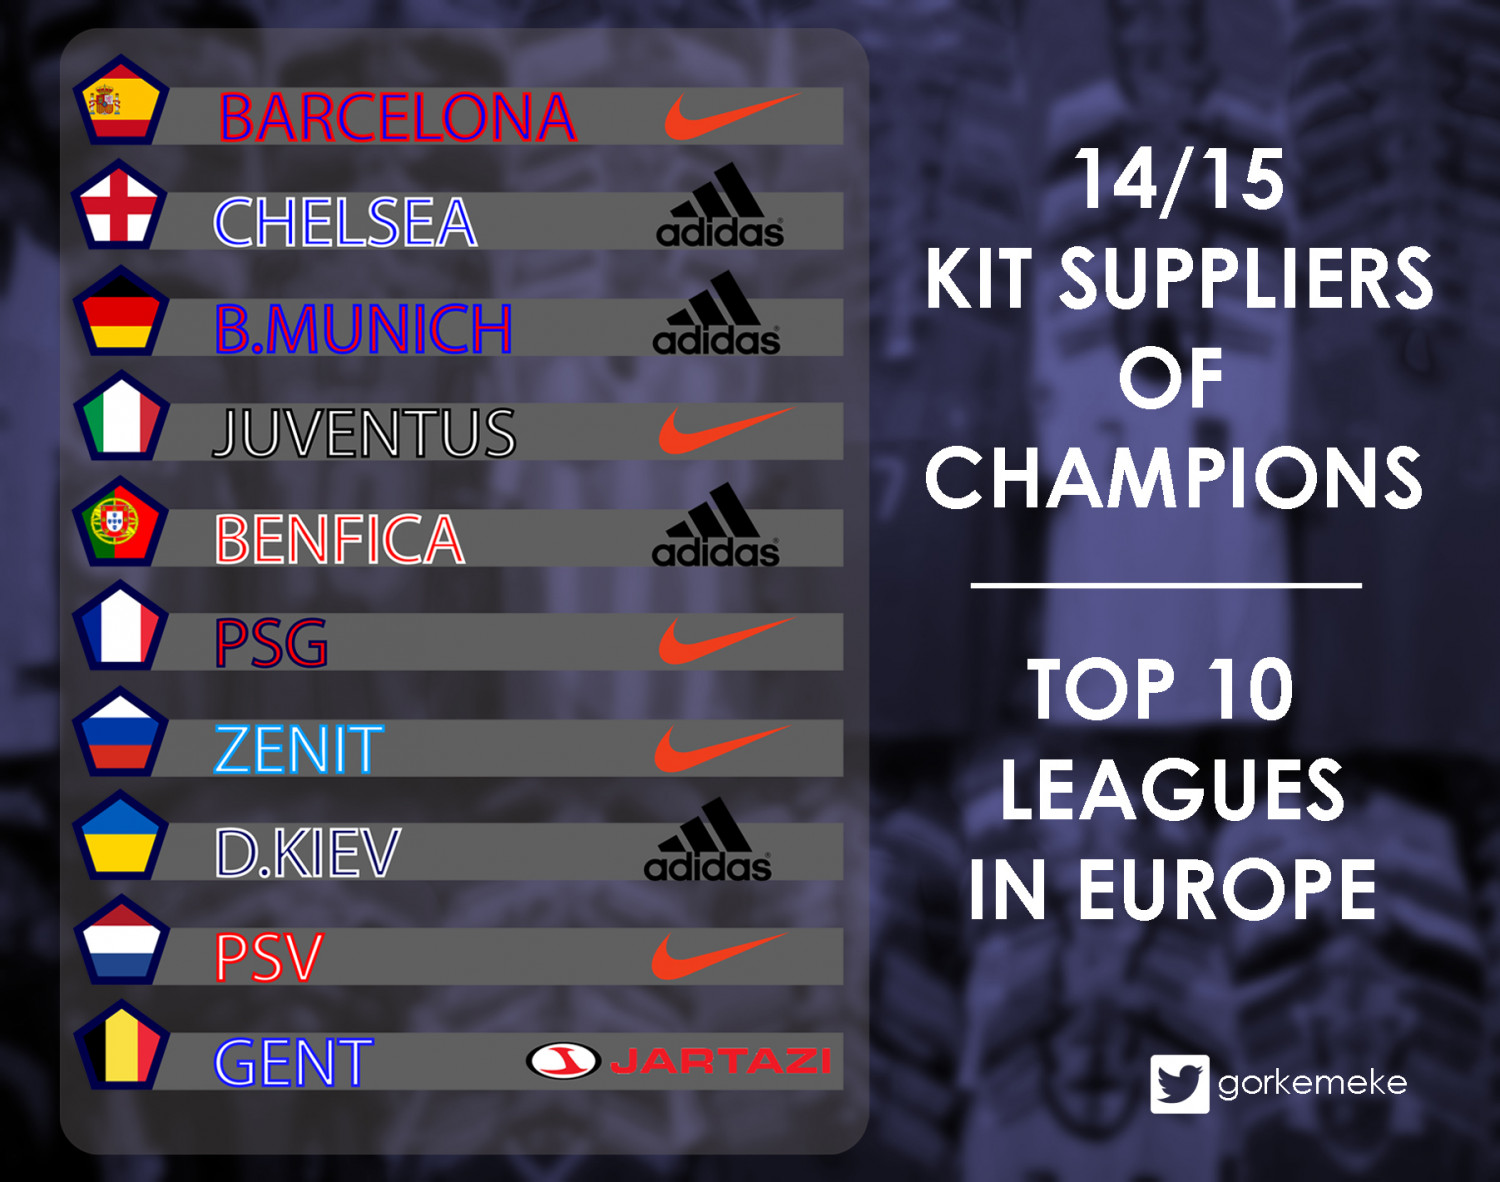 14/15 Kit Suppliers of Champions Infographic